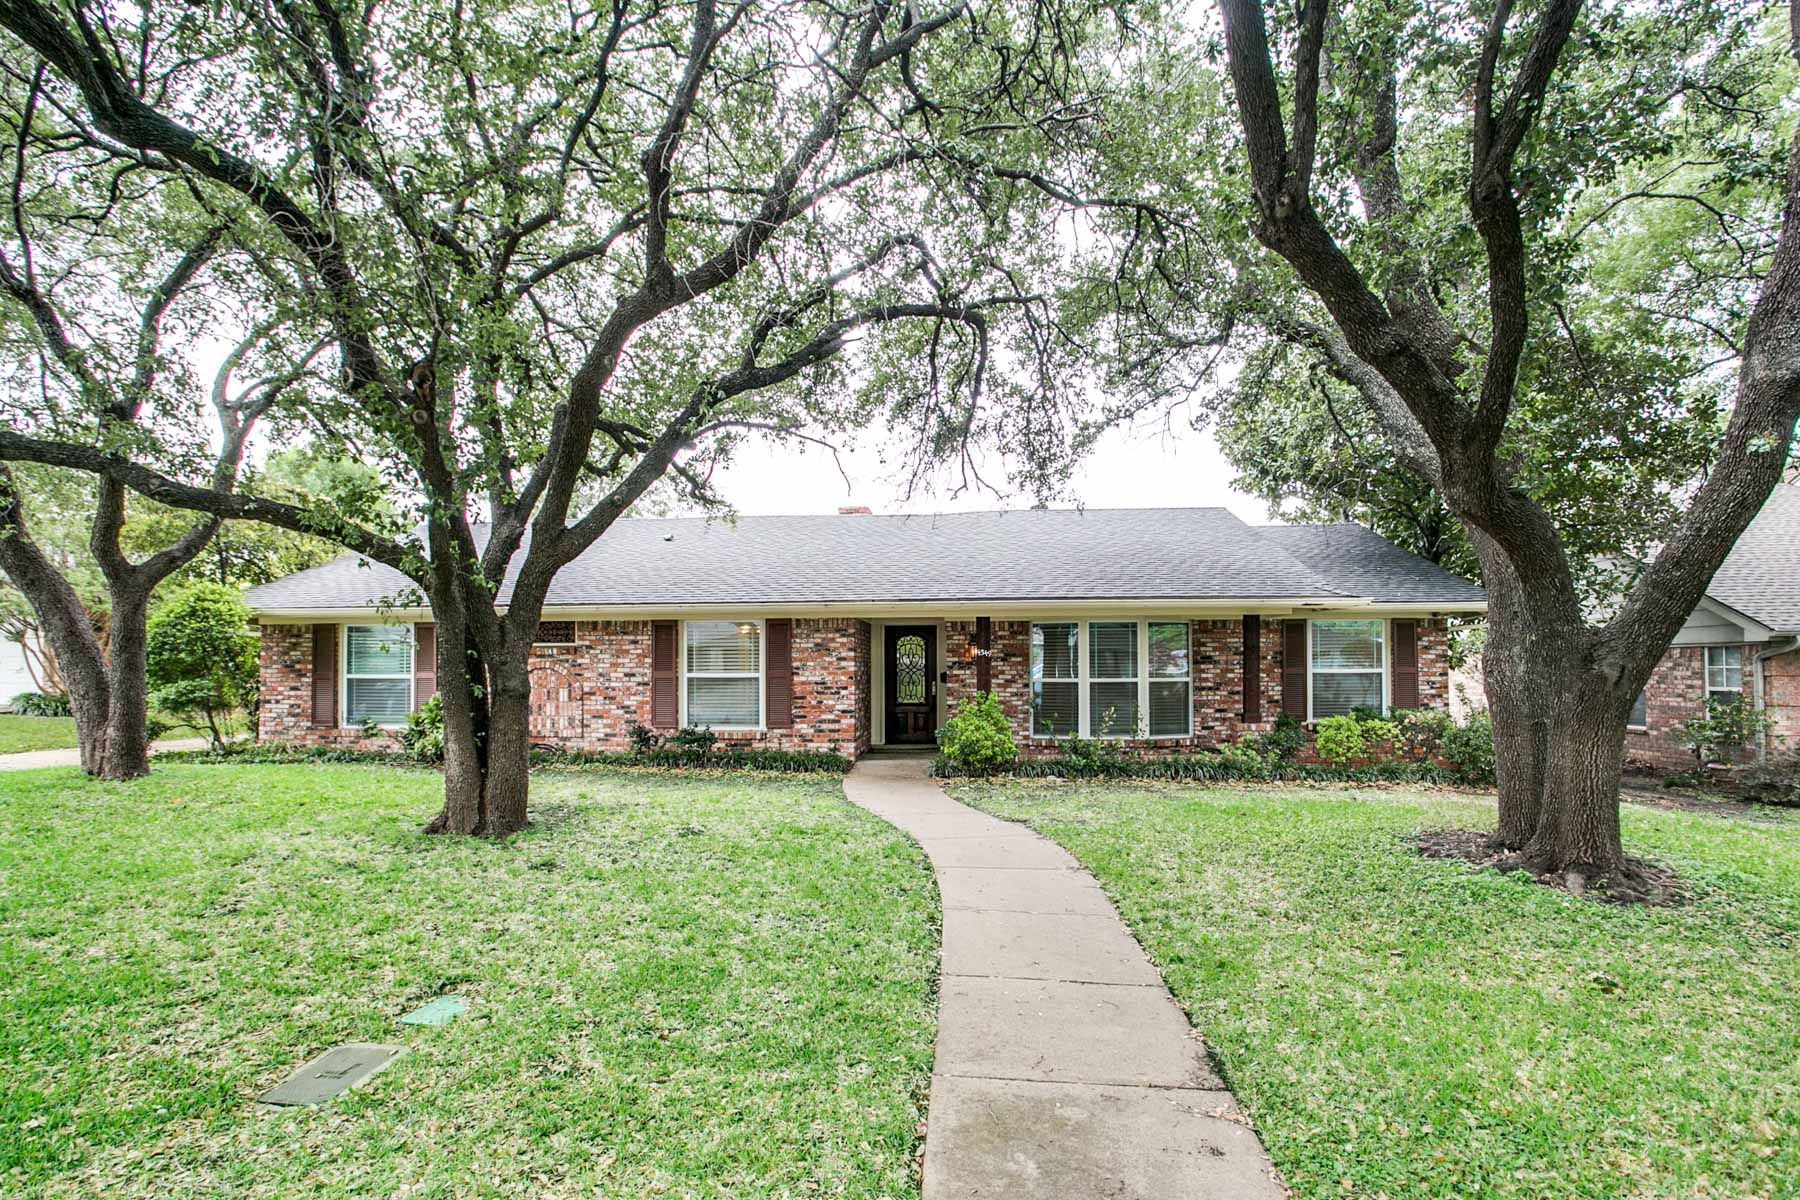 Single Family Home for Sale at 4349 Whitfield Ave, Fort Worth Fort Worth, Texas, 76109 United States